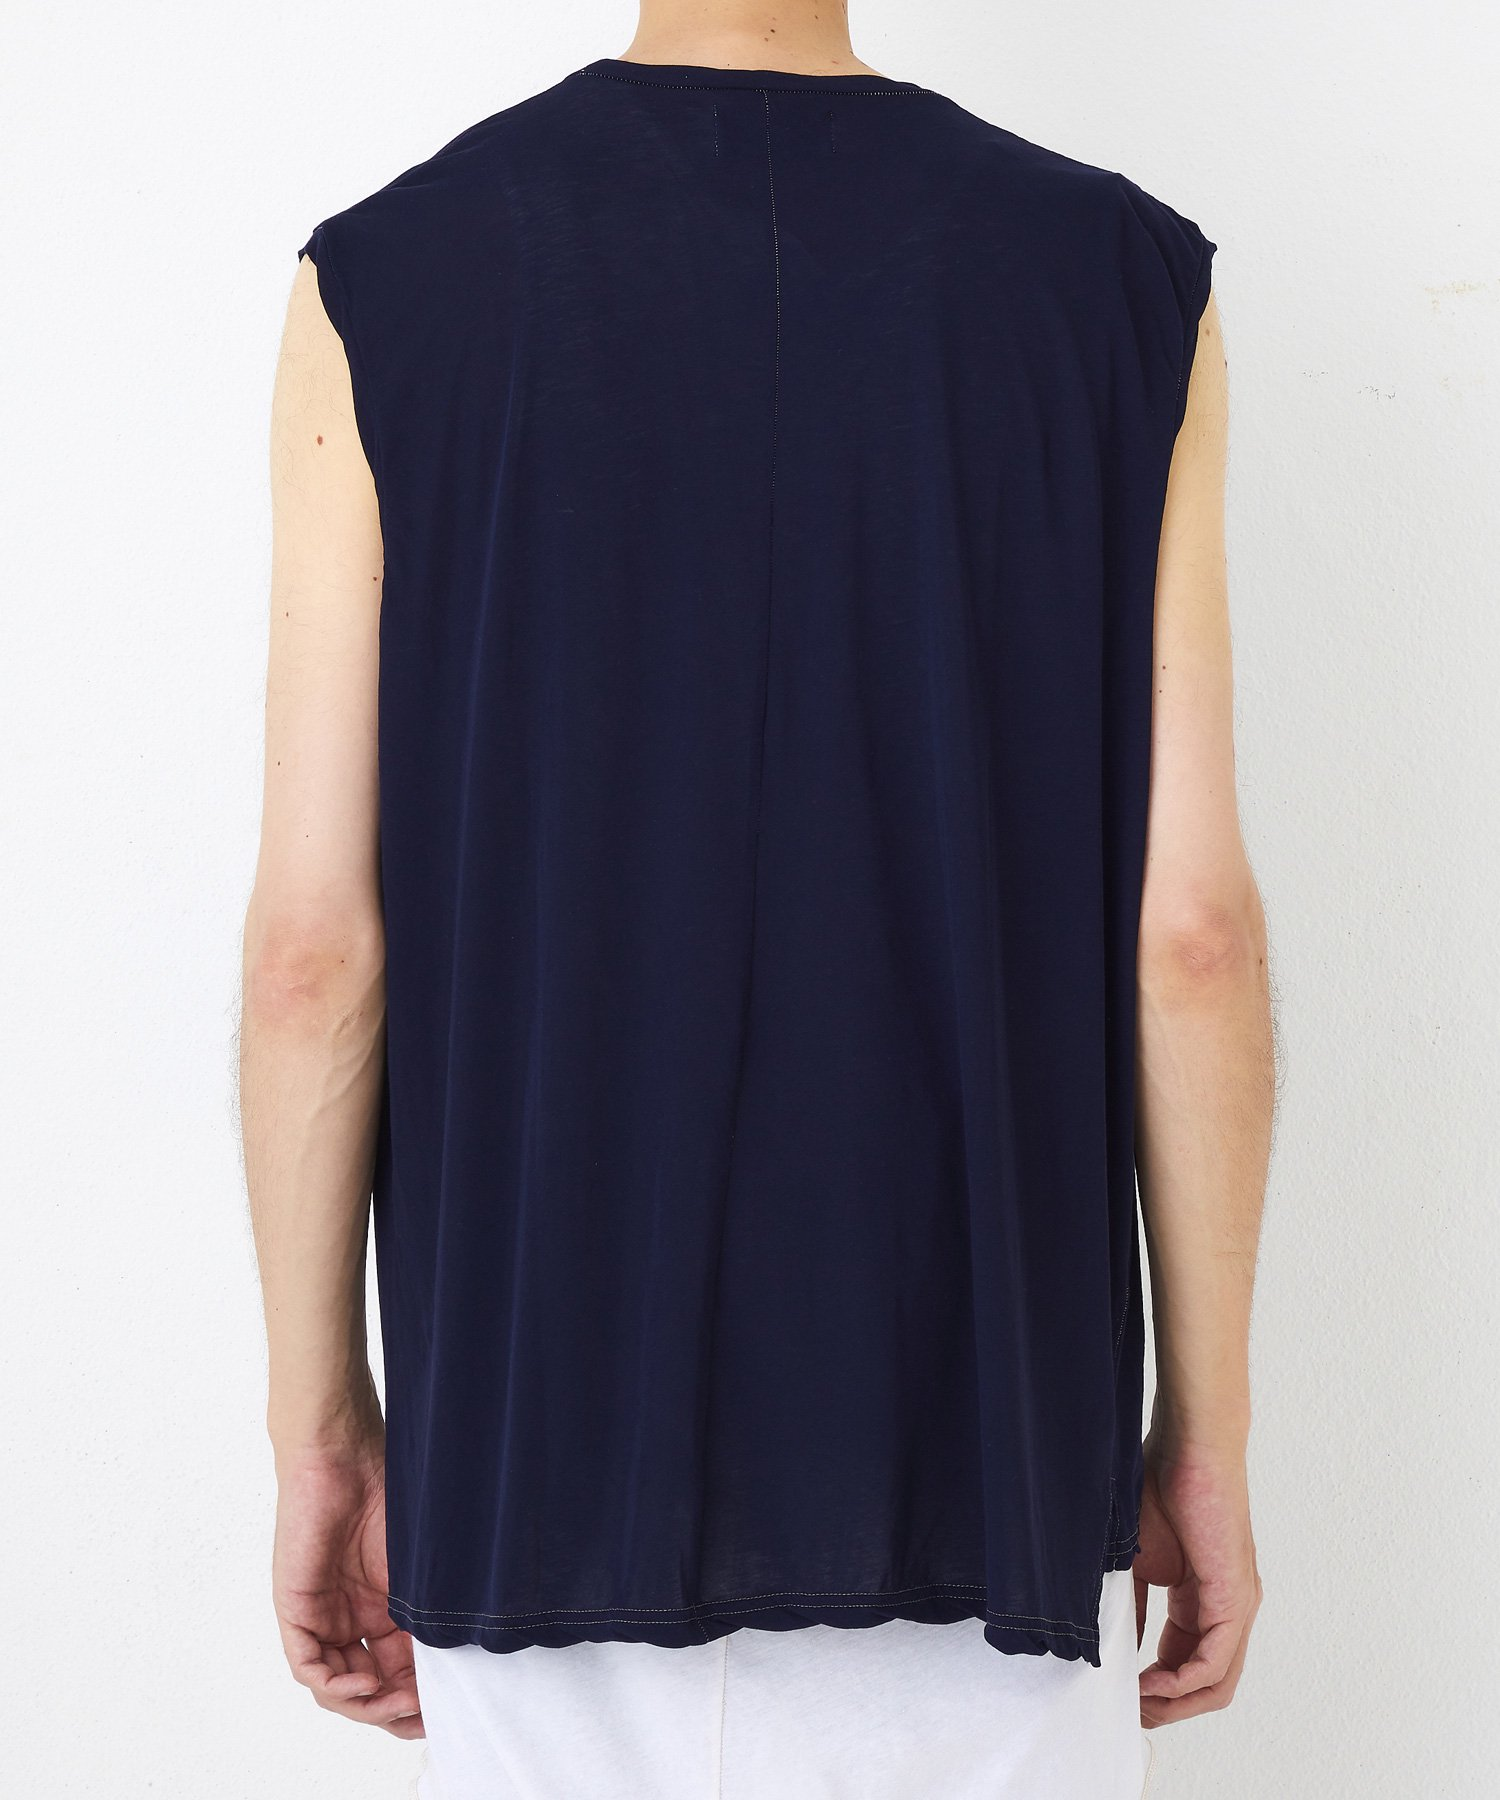 NO SLEEVE【Navy】&【Off】&【Black】